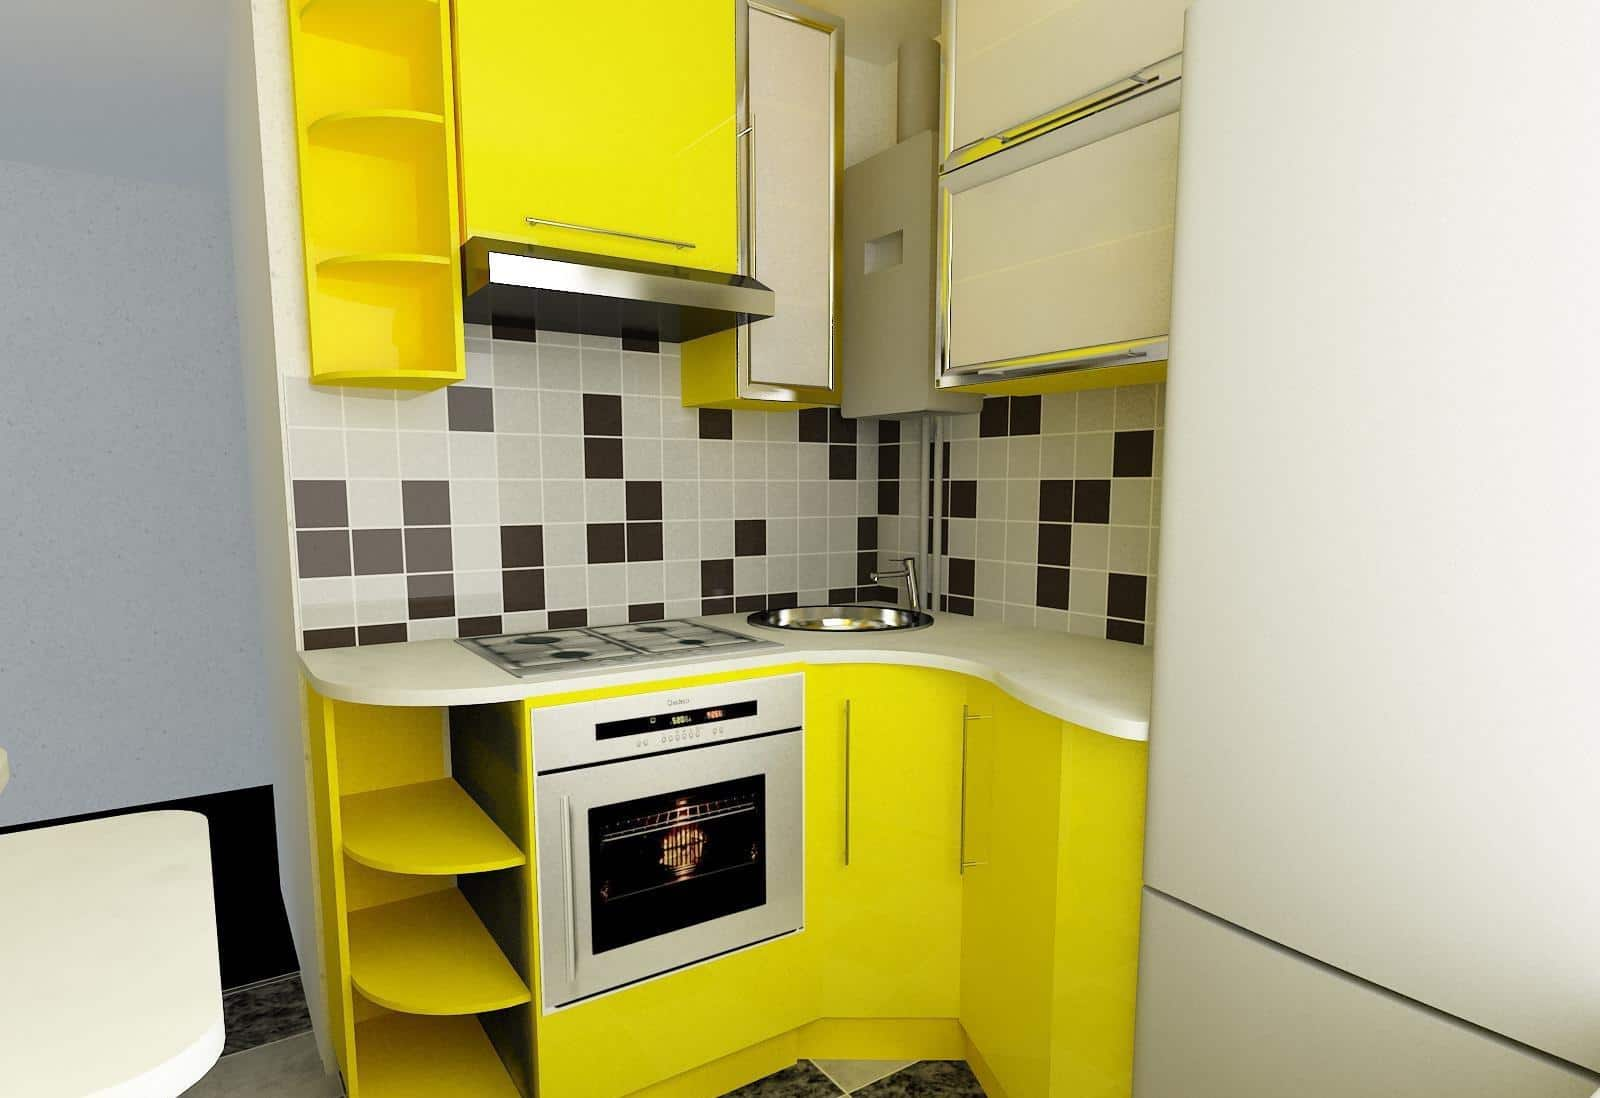 Pros and Cons of Small Kitchens. Neat yellow design of the furniture